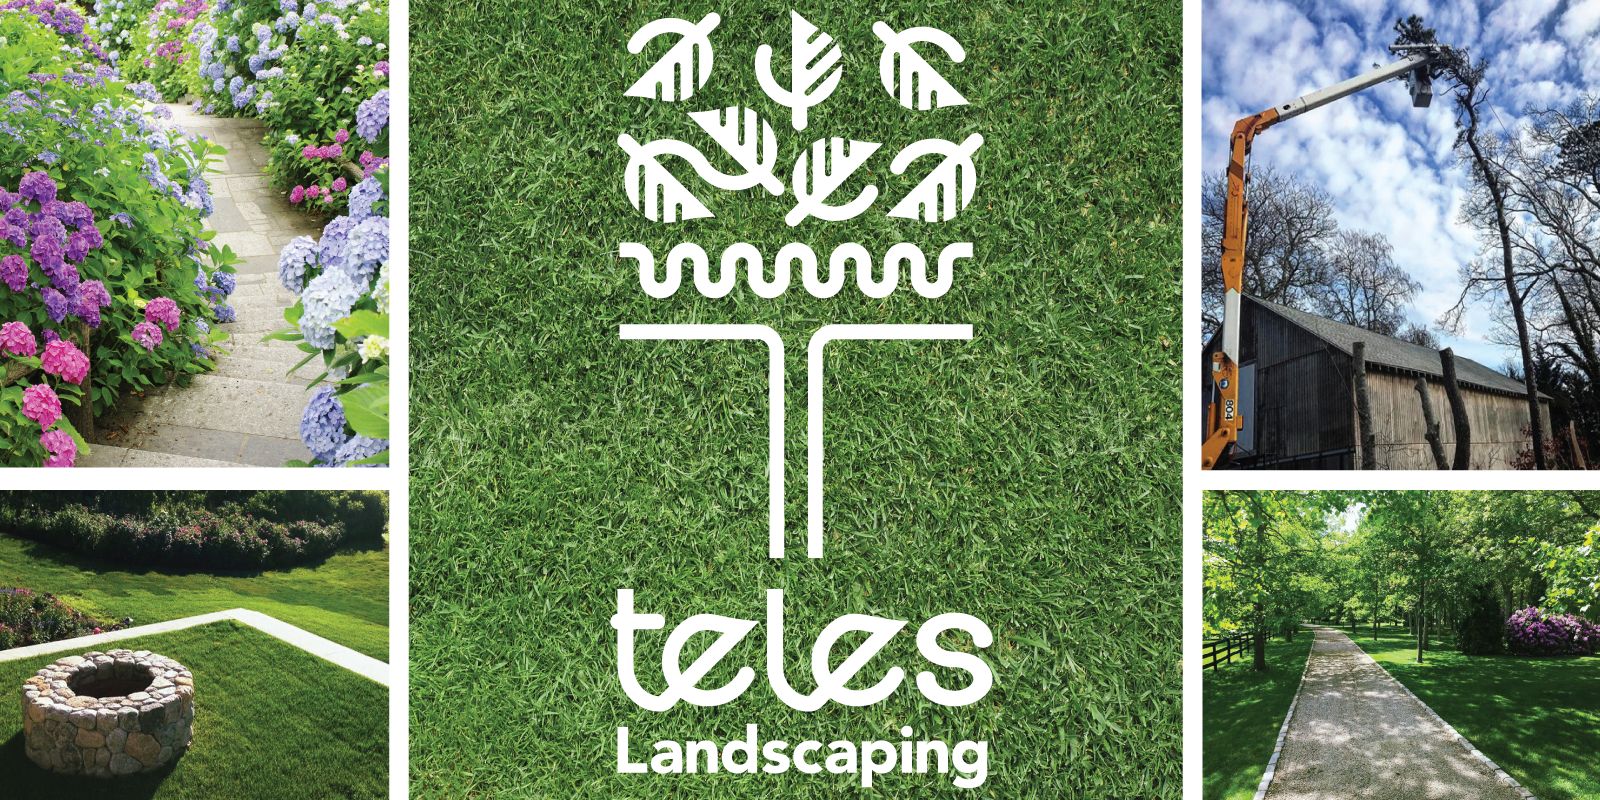 Teles Landscaping